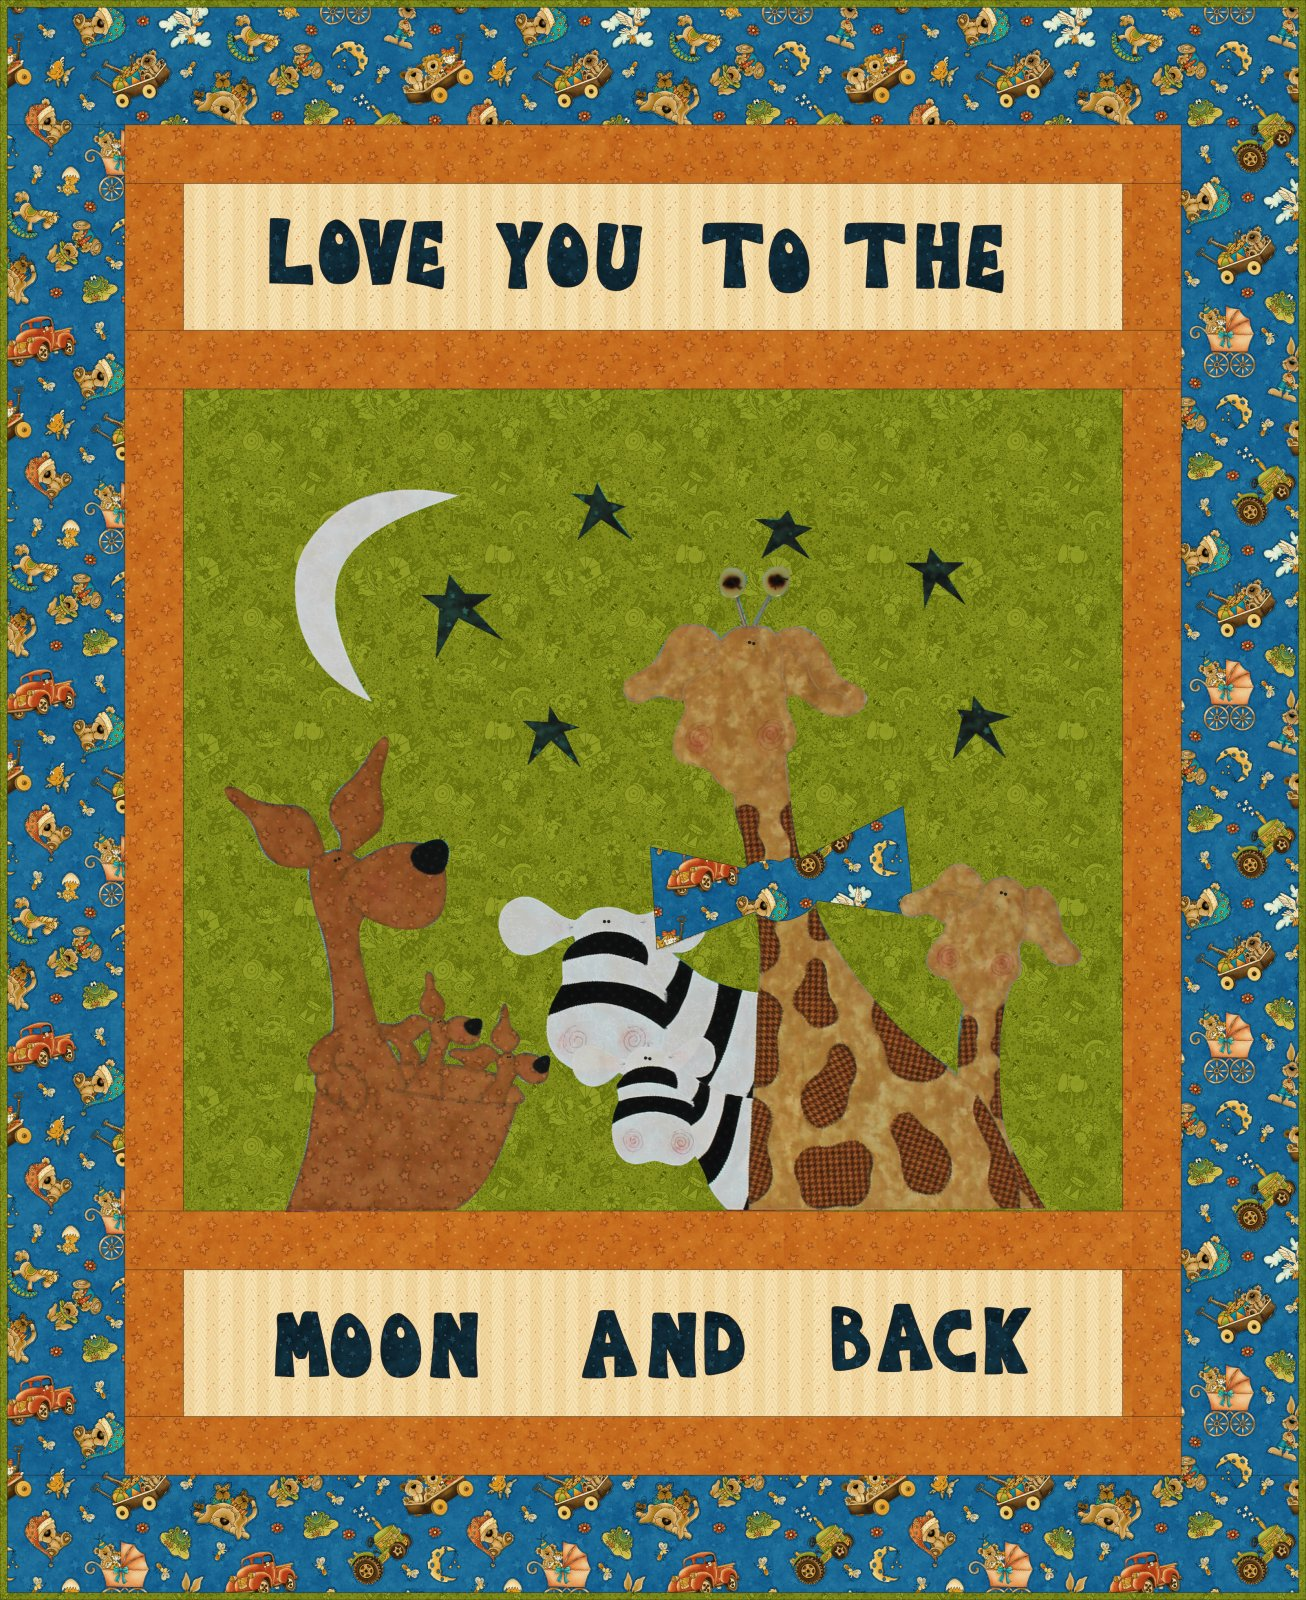 Love You to the Moon and Back - 1